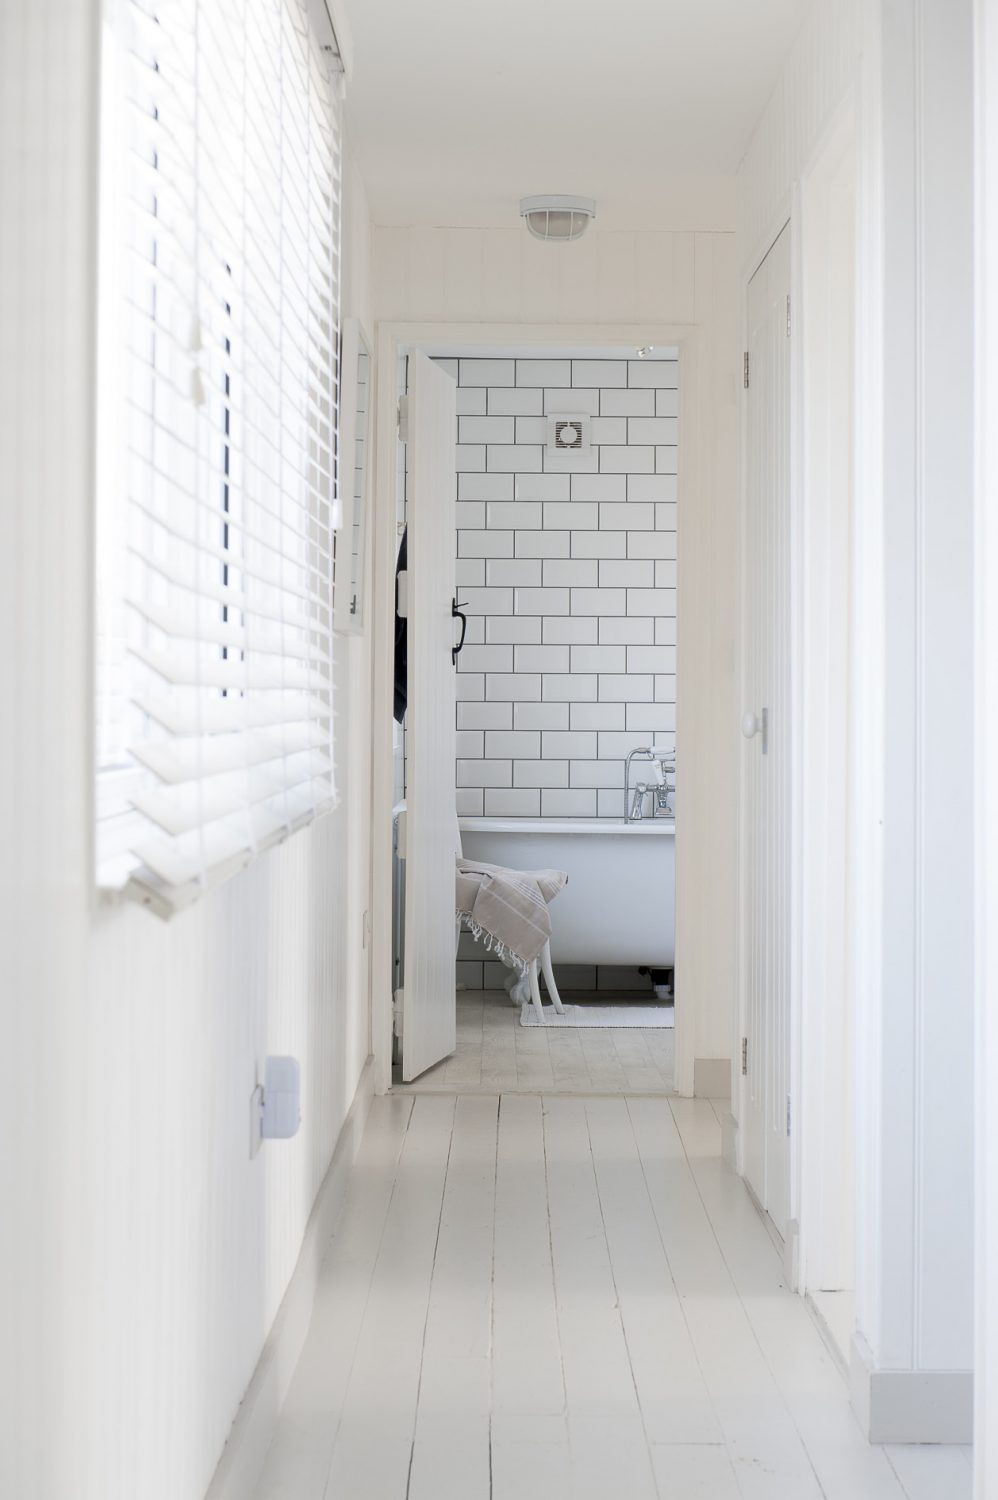 The floors throughout the house are painted in 'Ammonite' by Farrow and Ball. The simple floor treatment has proved to be a godsend too, as it is very easy to sweep out the main by product of seaside living – sand